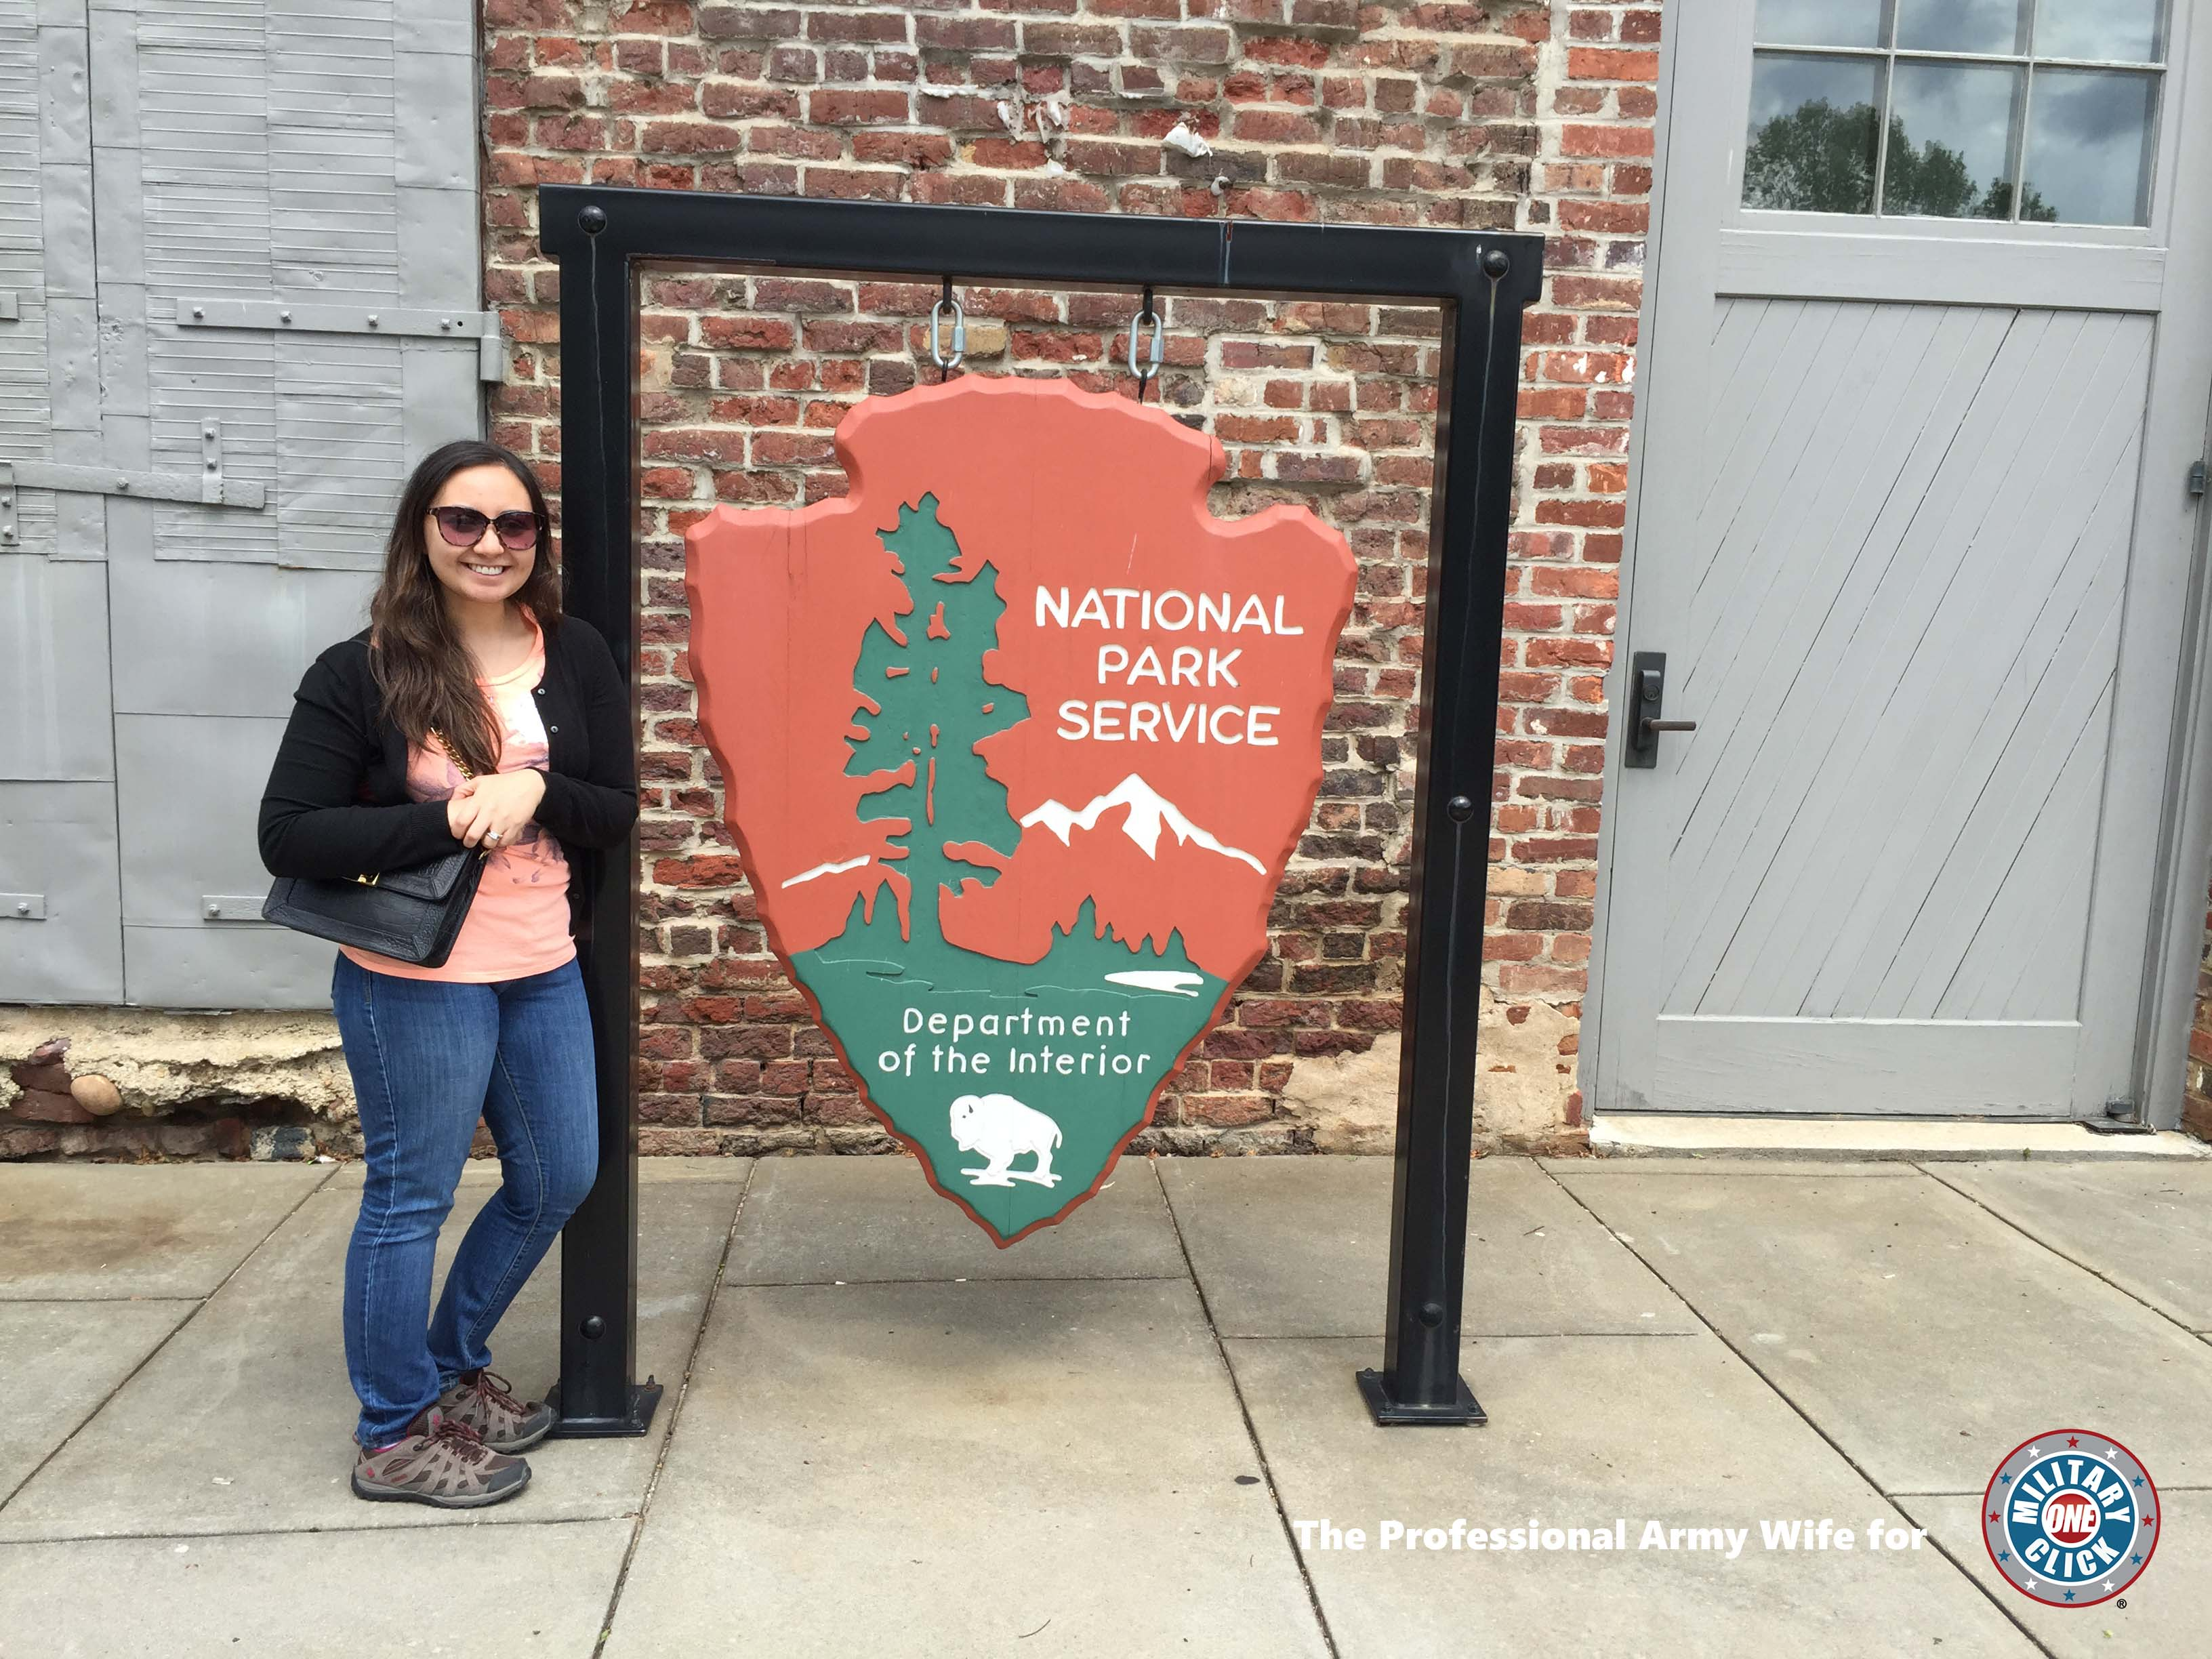 National parks that are close to military bases. Military families can get free passes too! (4)